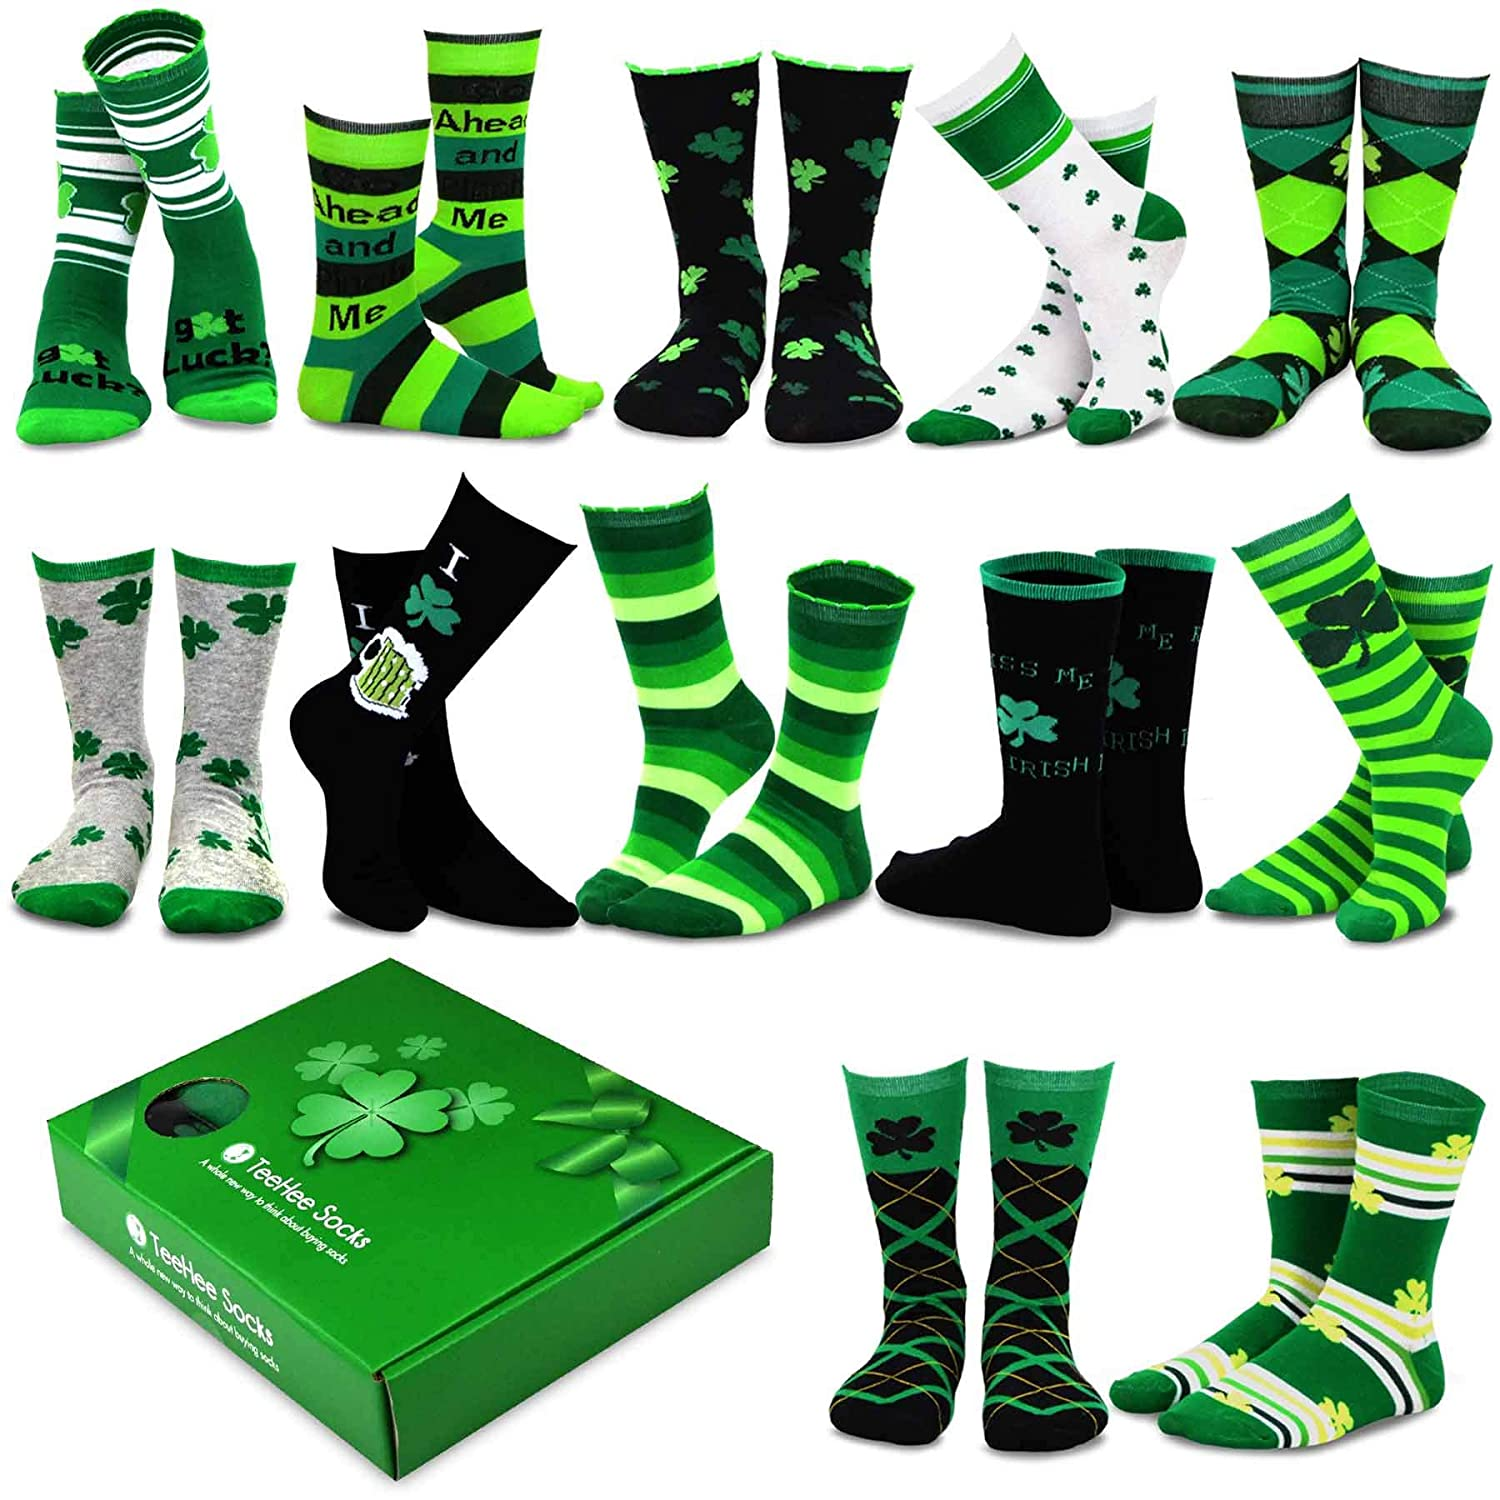 TeeHee Special (Holiday) 12-Pairs Socks with Gift Box. Soxnet Inc